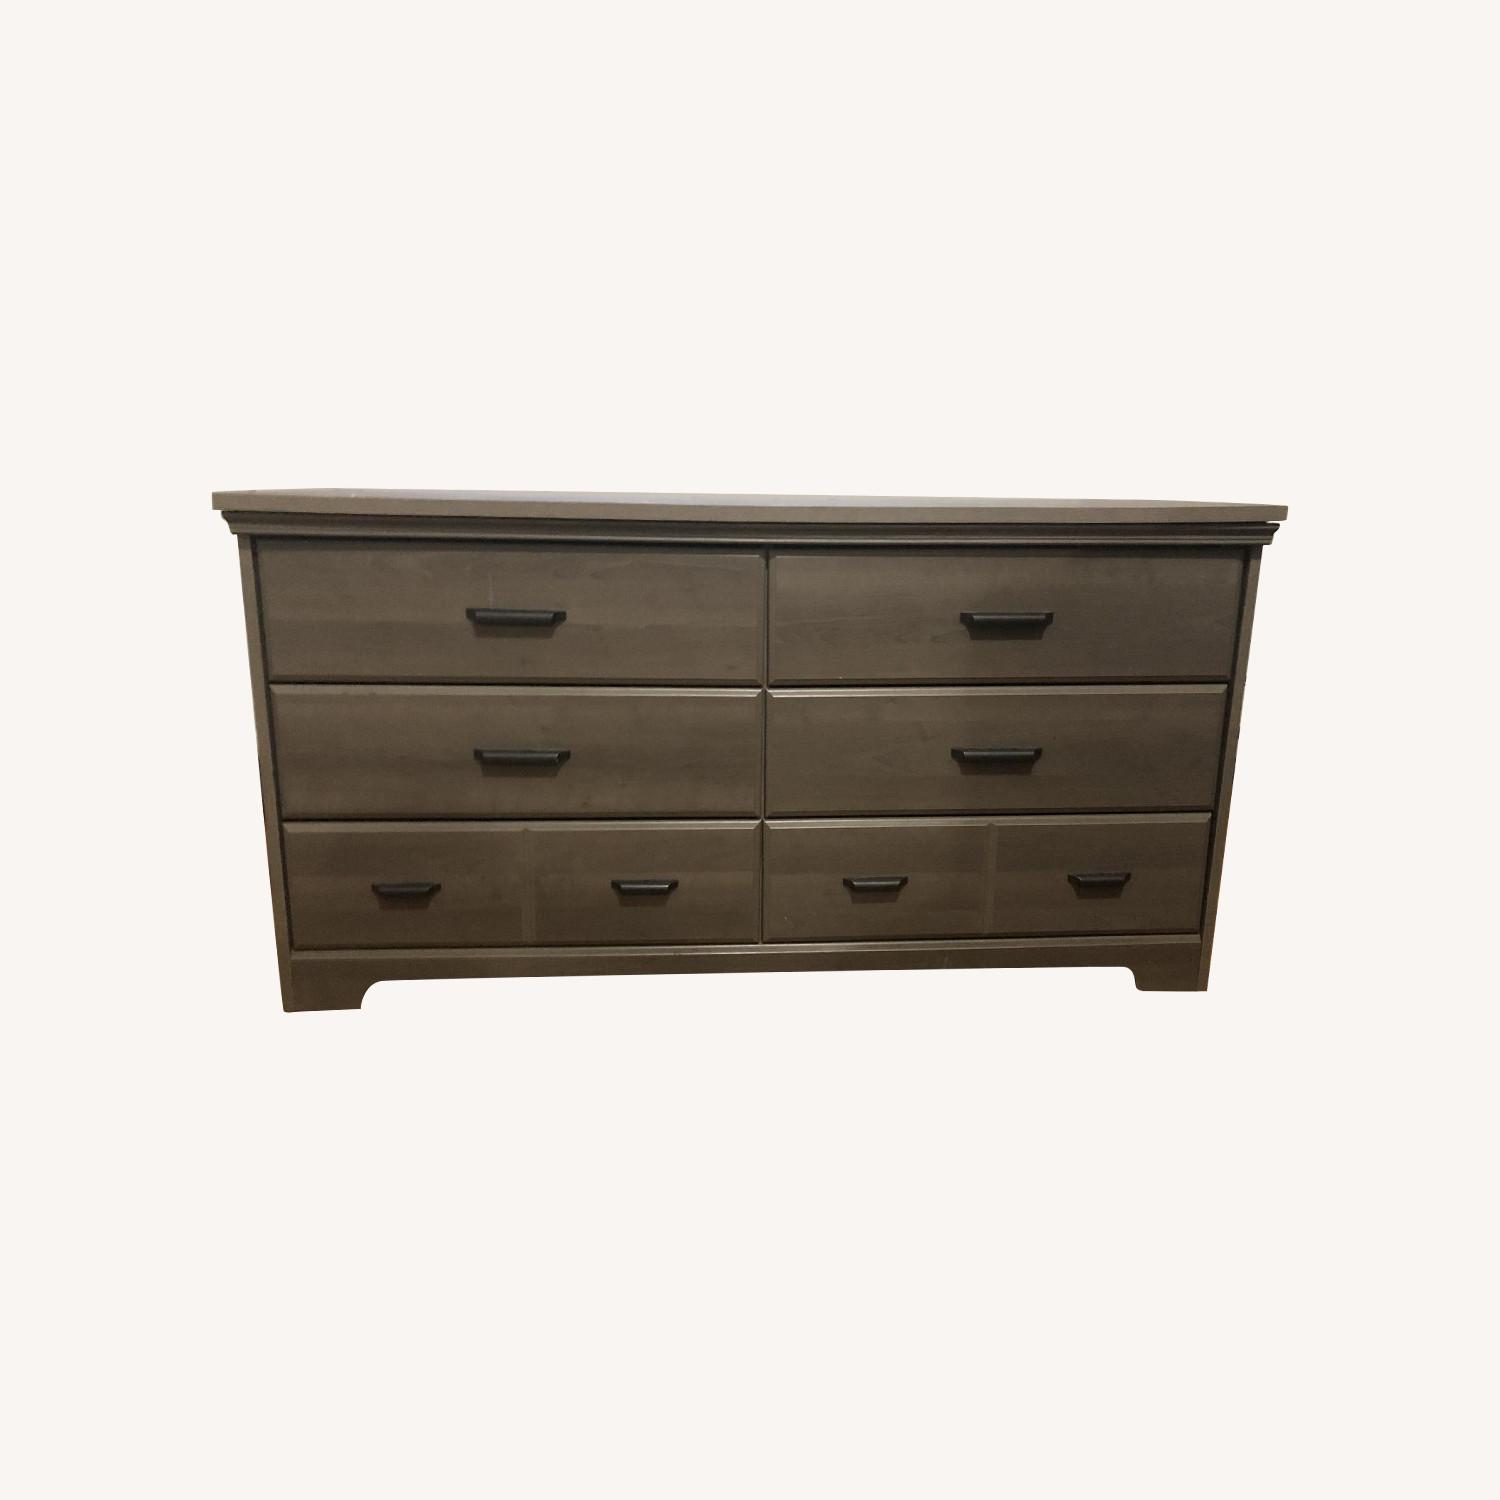 AM+ Studio Versa 6 Drawer Dresser - image-0